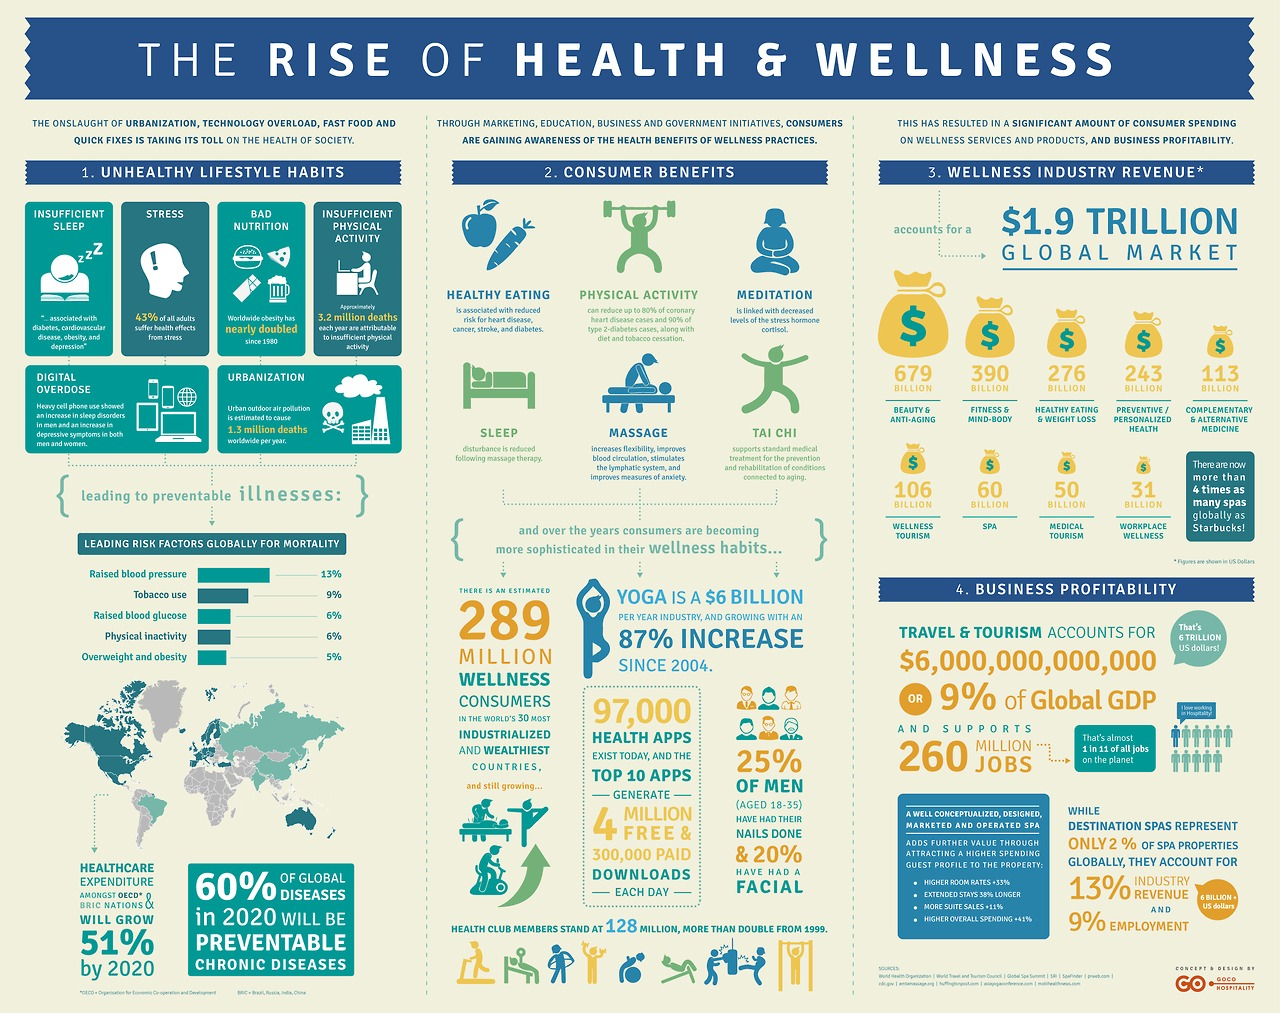 Itchaya Goaysomboon from Thailand - The Rise of Health and Wellness No 22